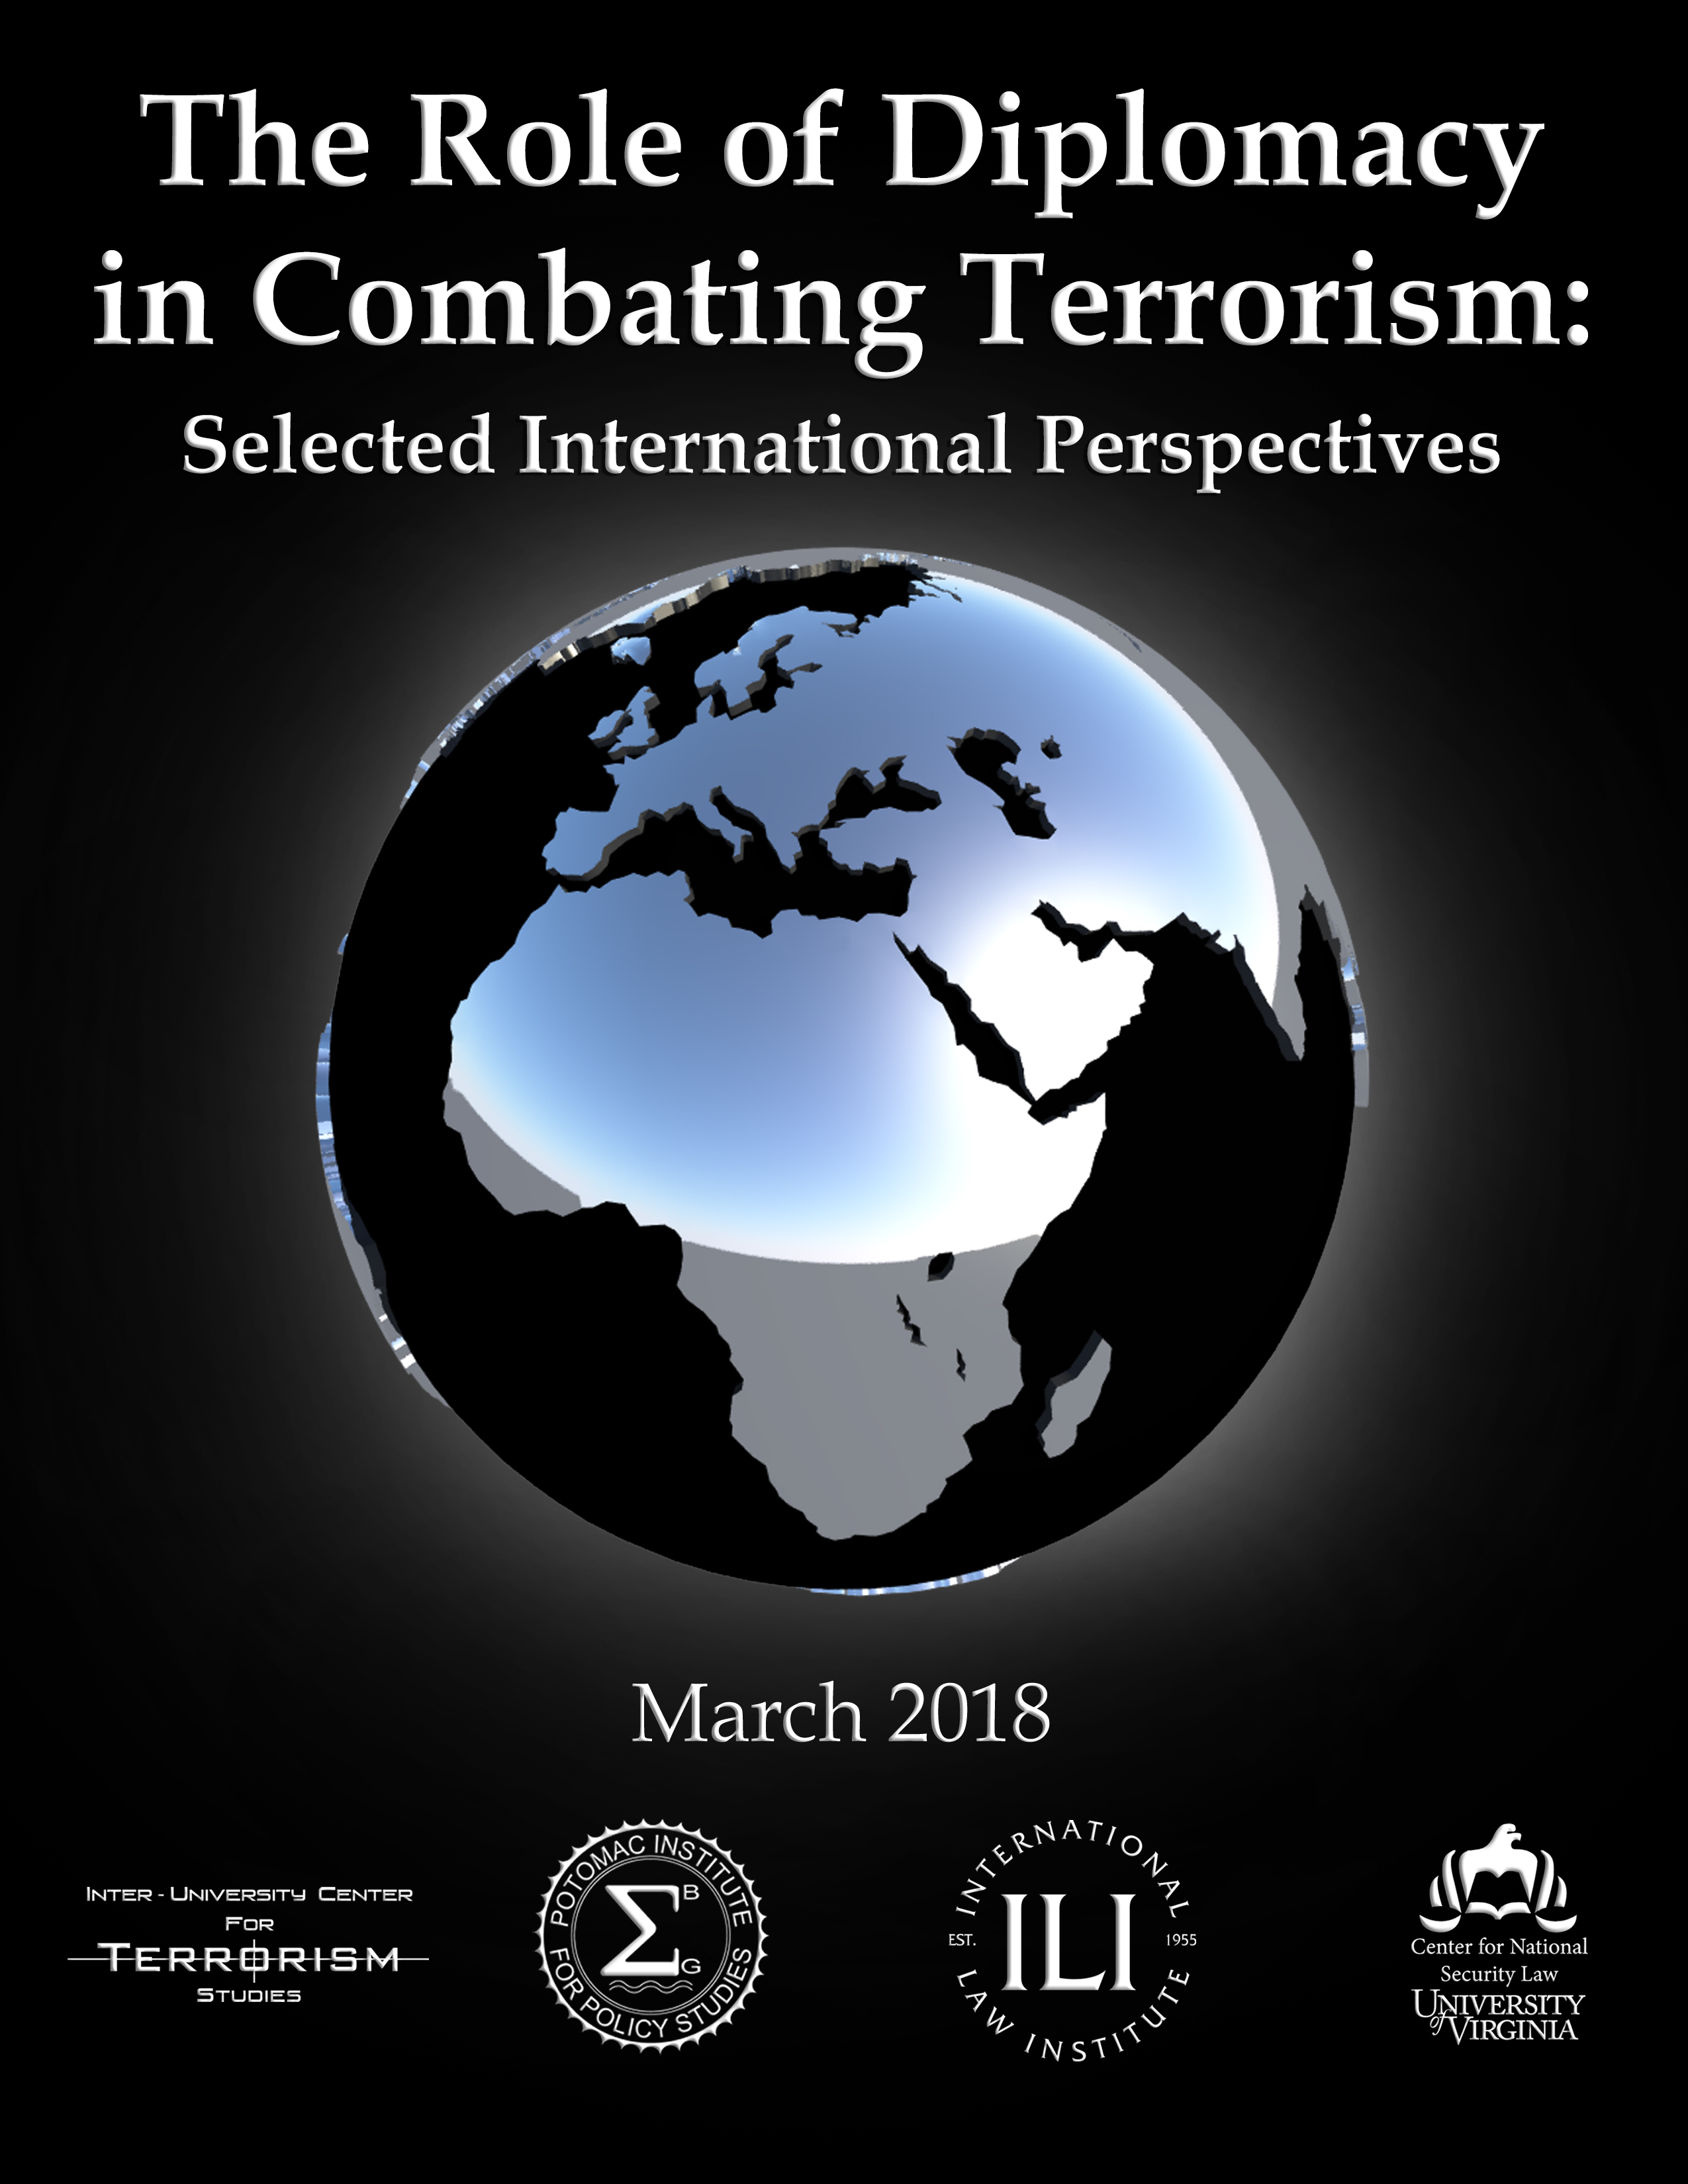 The Role of Diplomacy in Combating Terrorism